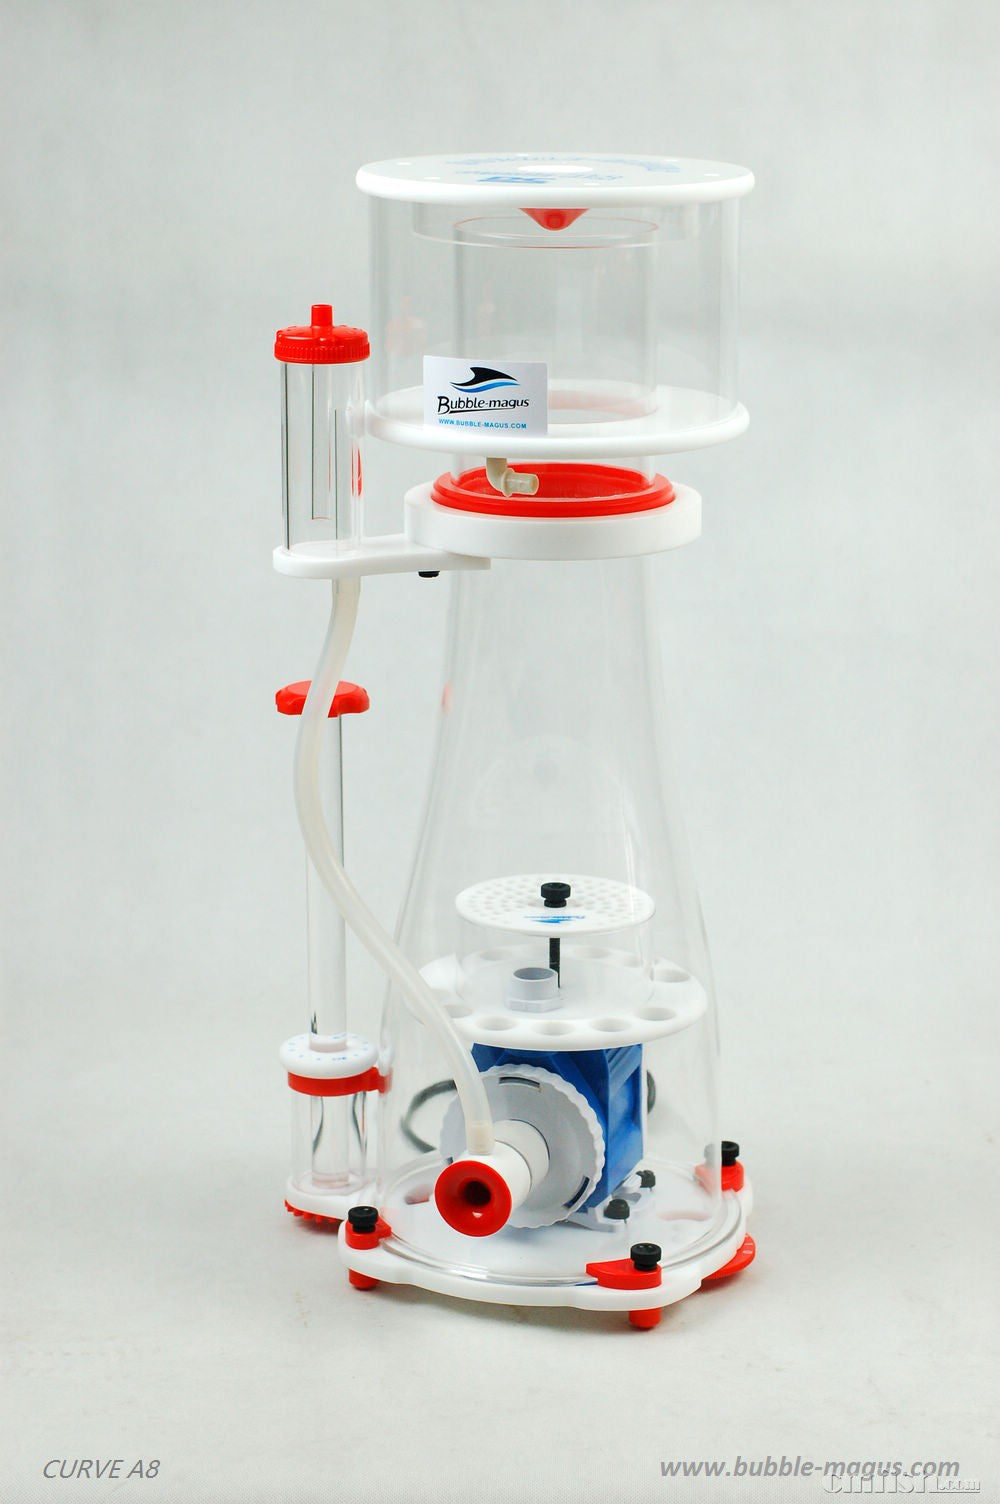 Bubble Magus CURVE -A8 Protein Skimmer